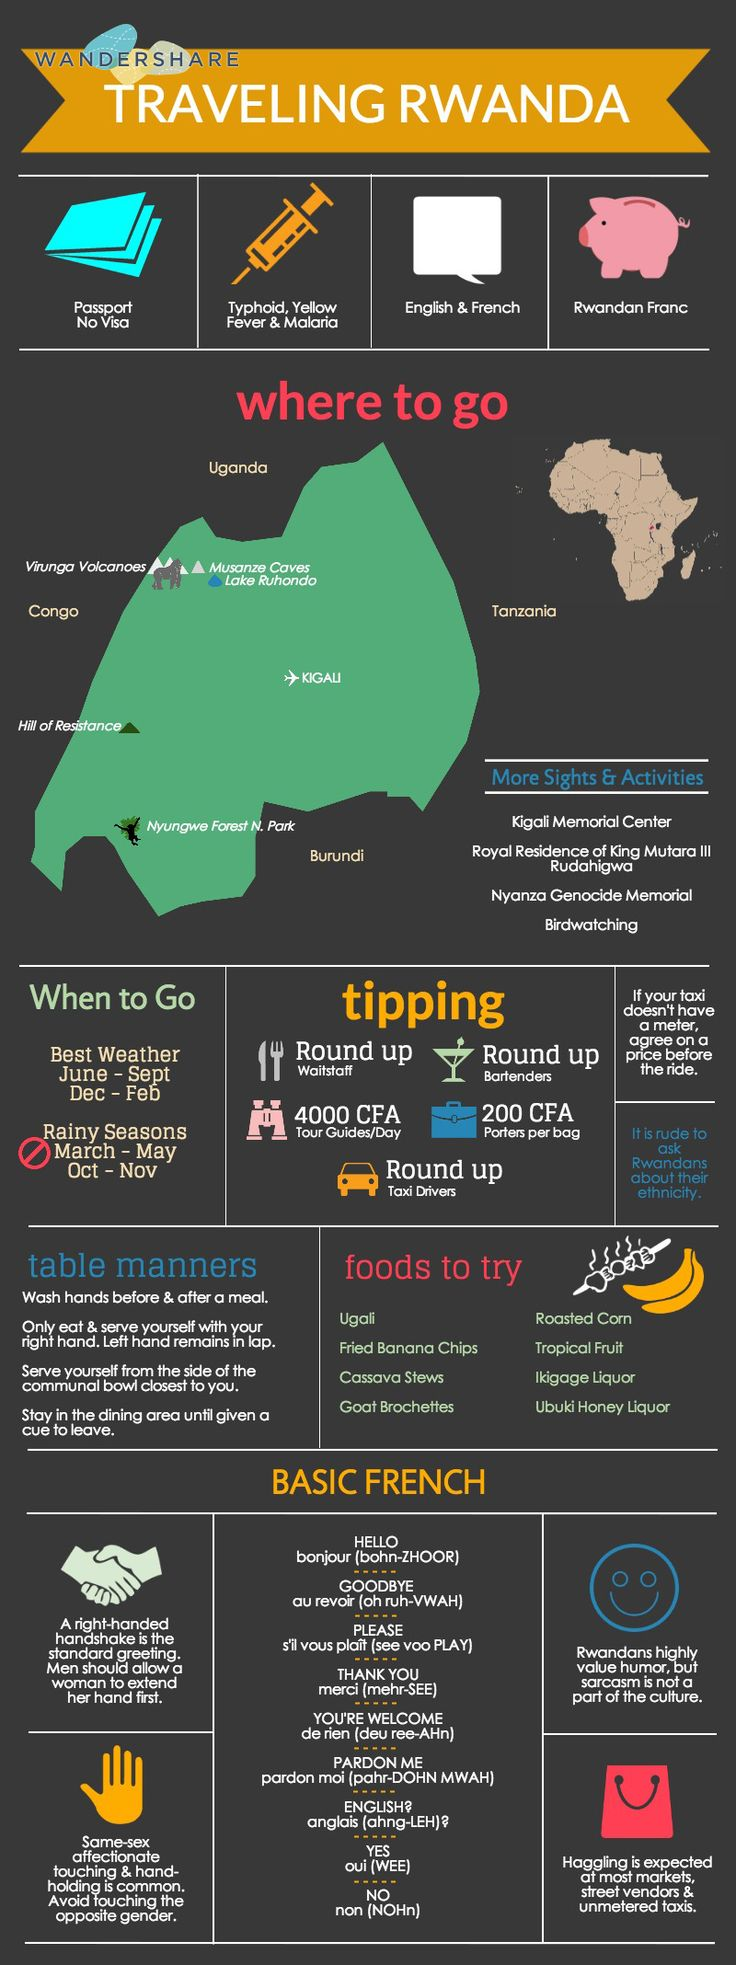 #Rwanda #Travel Cheat Sheet; Sign up at www.wandershare.com for high-res images. http://finelinedrivingacademy.co.uk